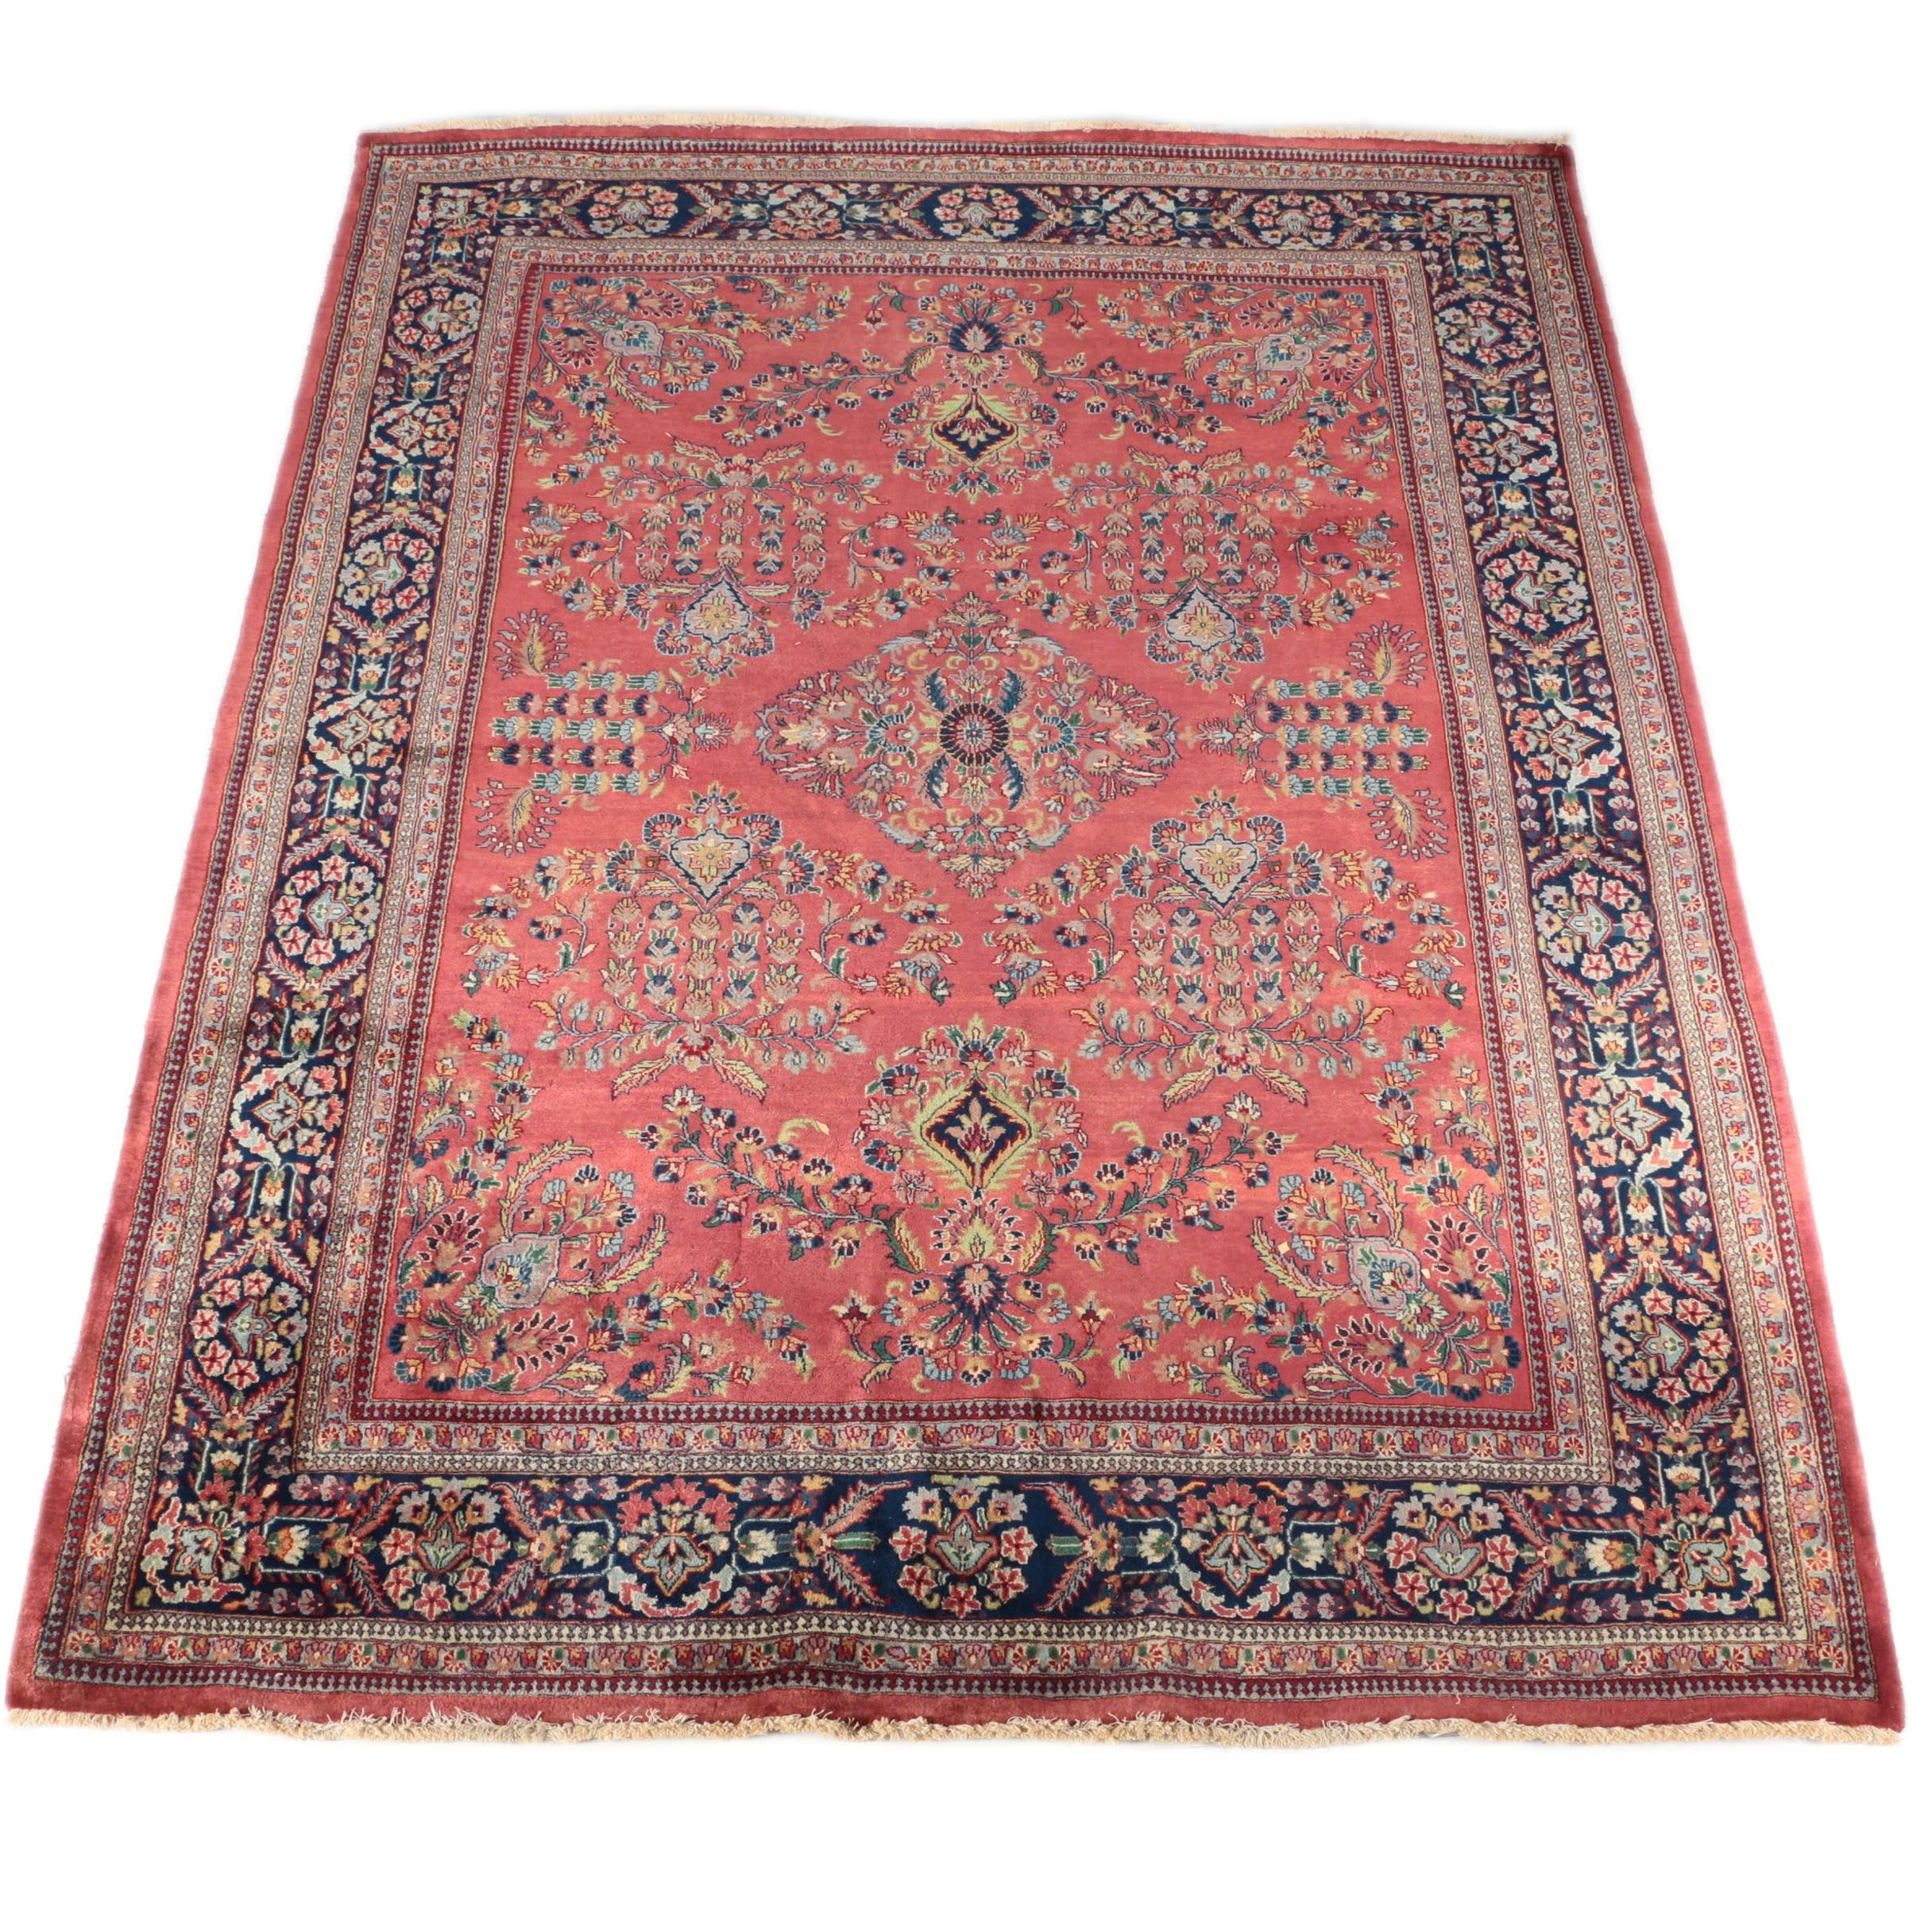 Finely Hand-Knotted Persian Mehriban Wool Area Rug